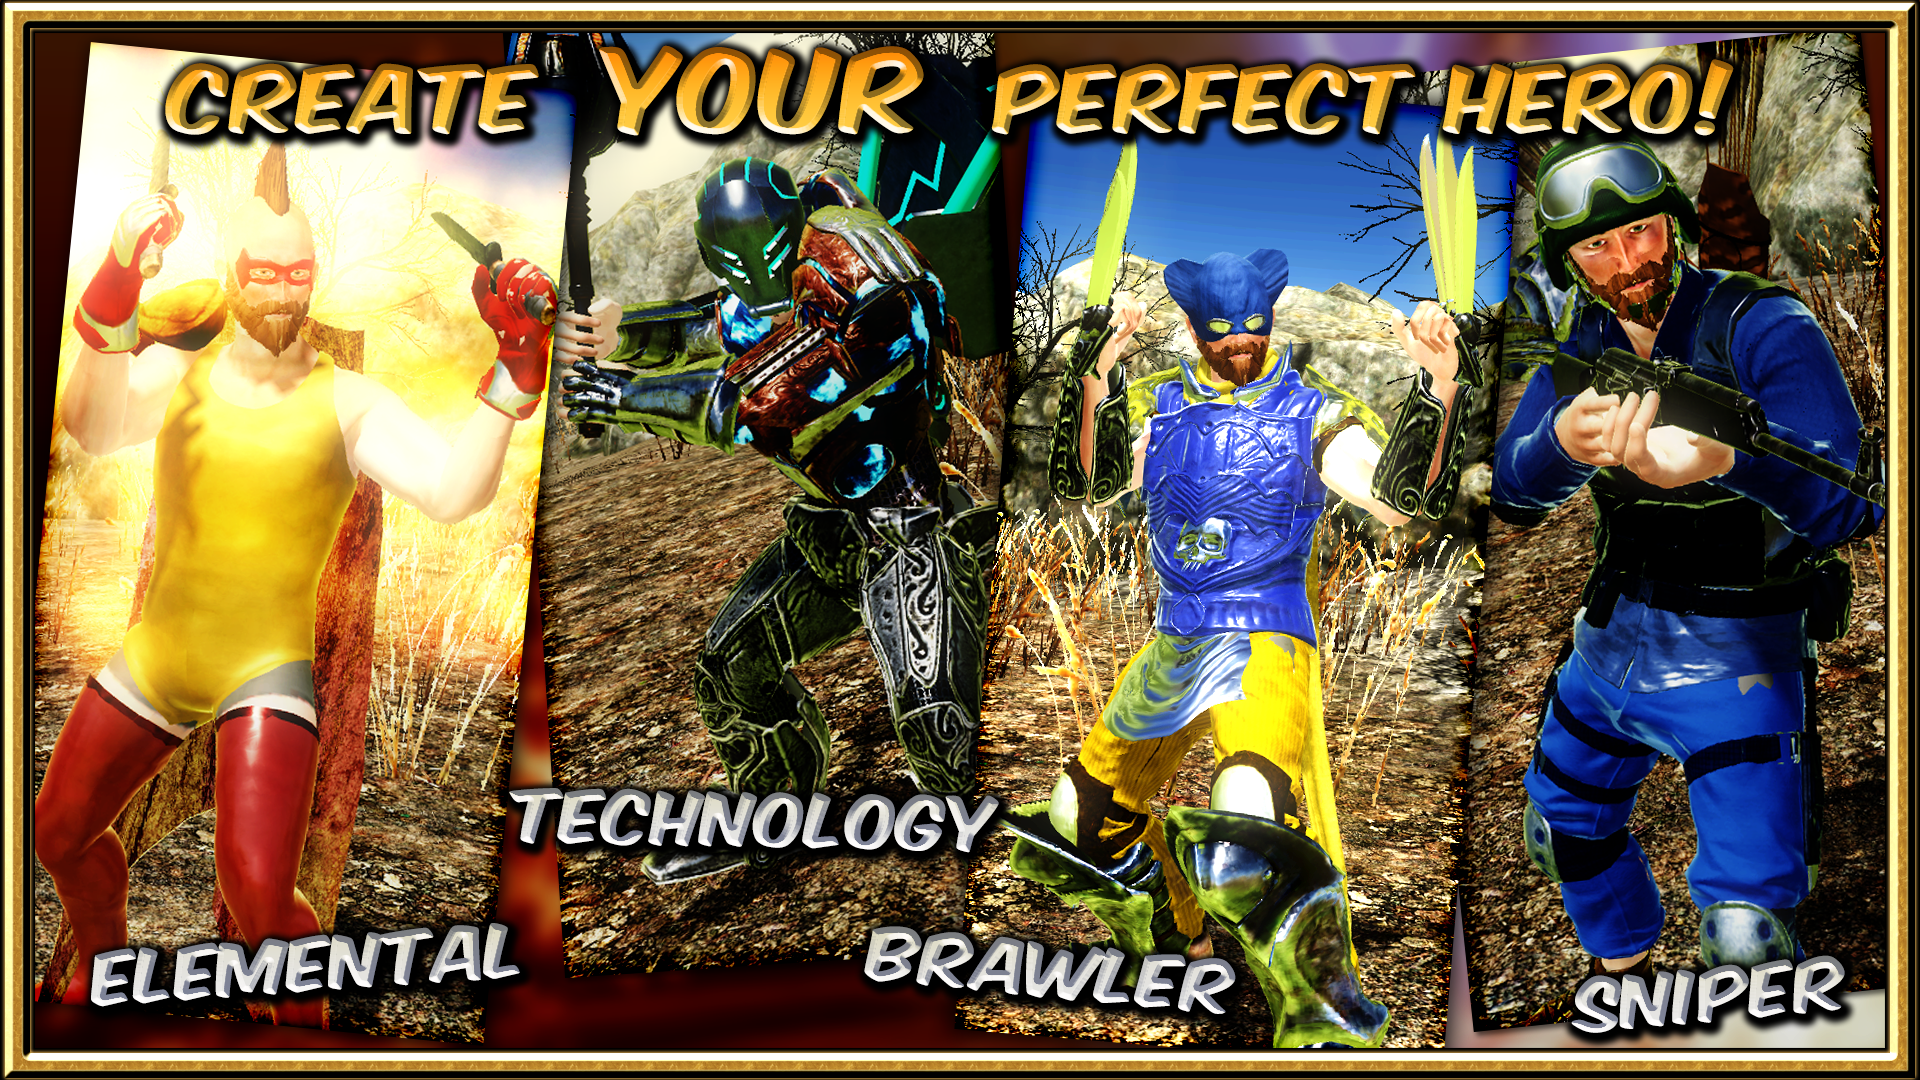 What kind of superpowers will you have? Elemental powers? Technology